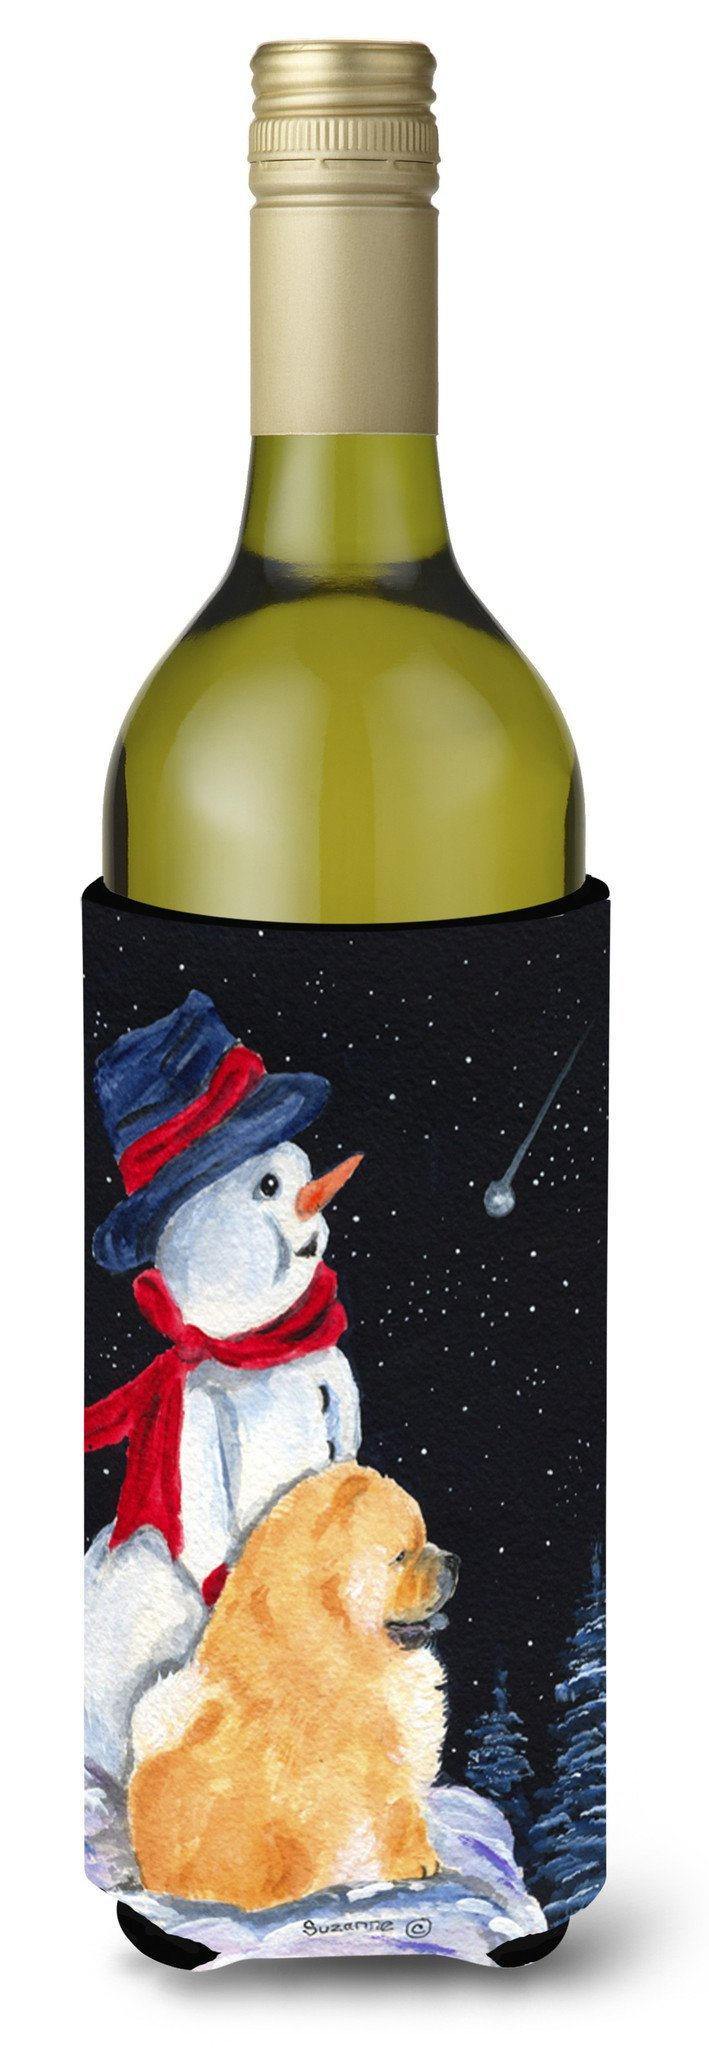 Snowman with Chow Chow Wine Bottle Beverage Insulator Beverage Insulator Hugger by Caroline's Treasures